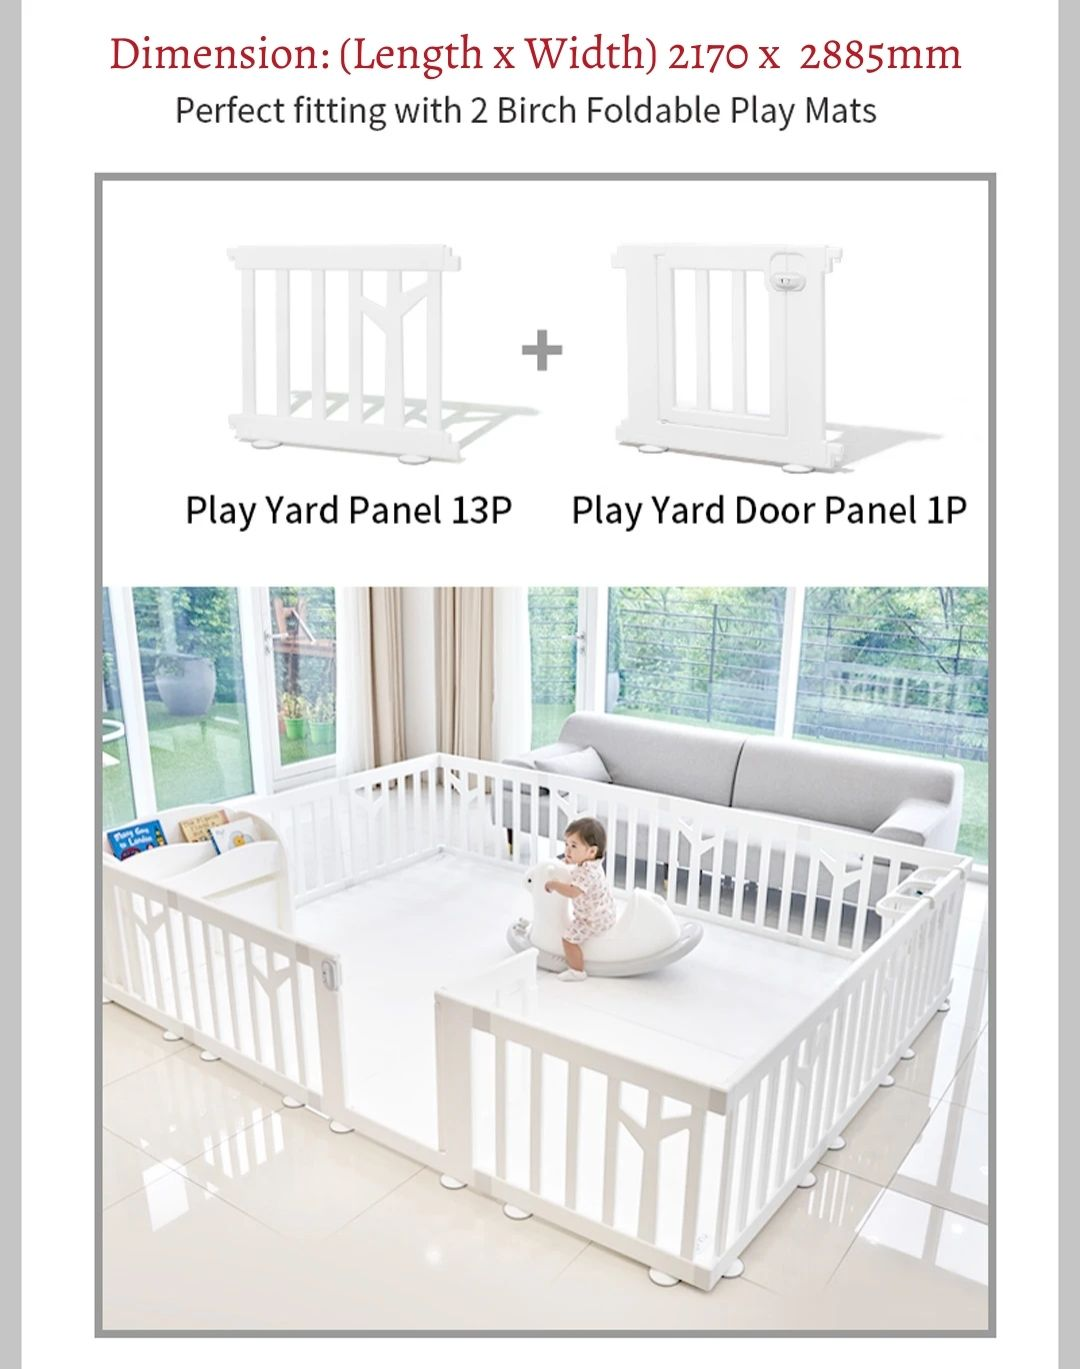 birch play yard 14pcs dimension